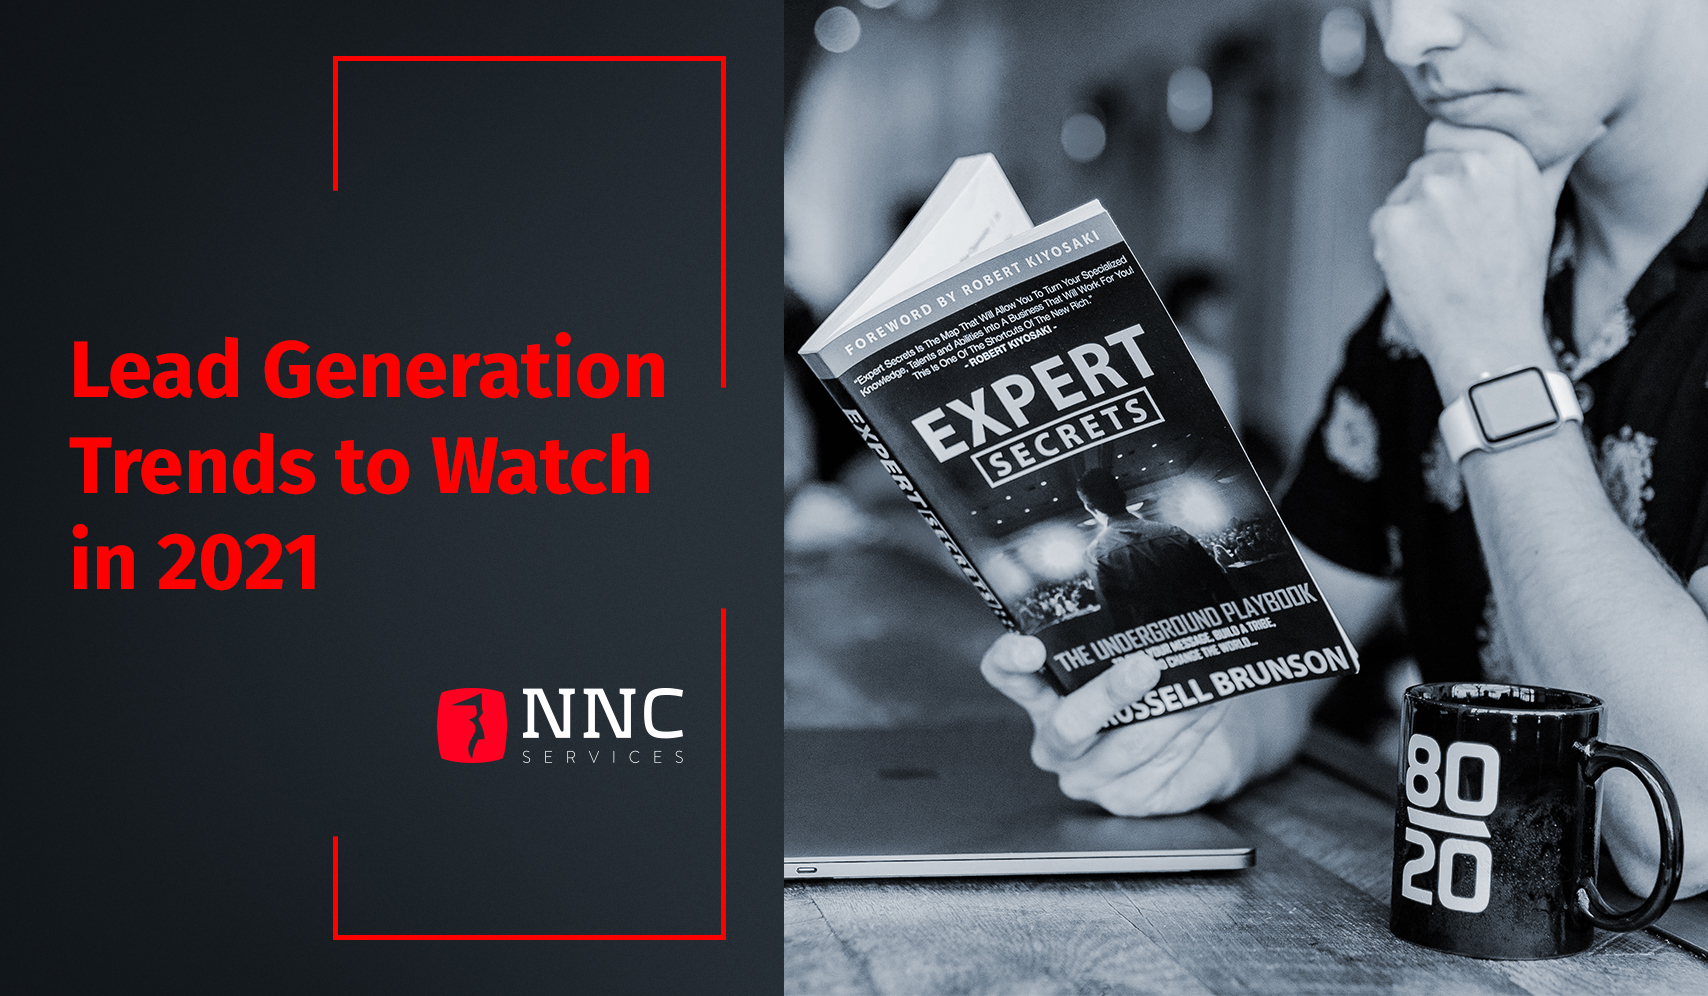 Lead Generation Trends to Watch in 2021